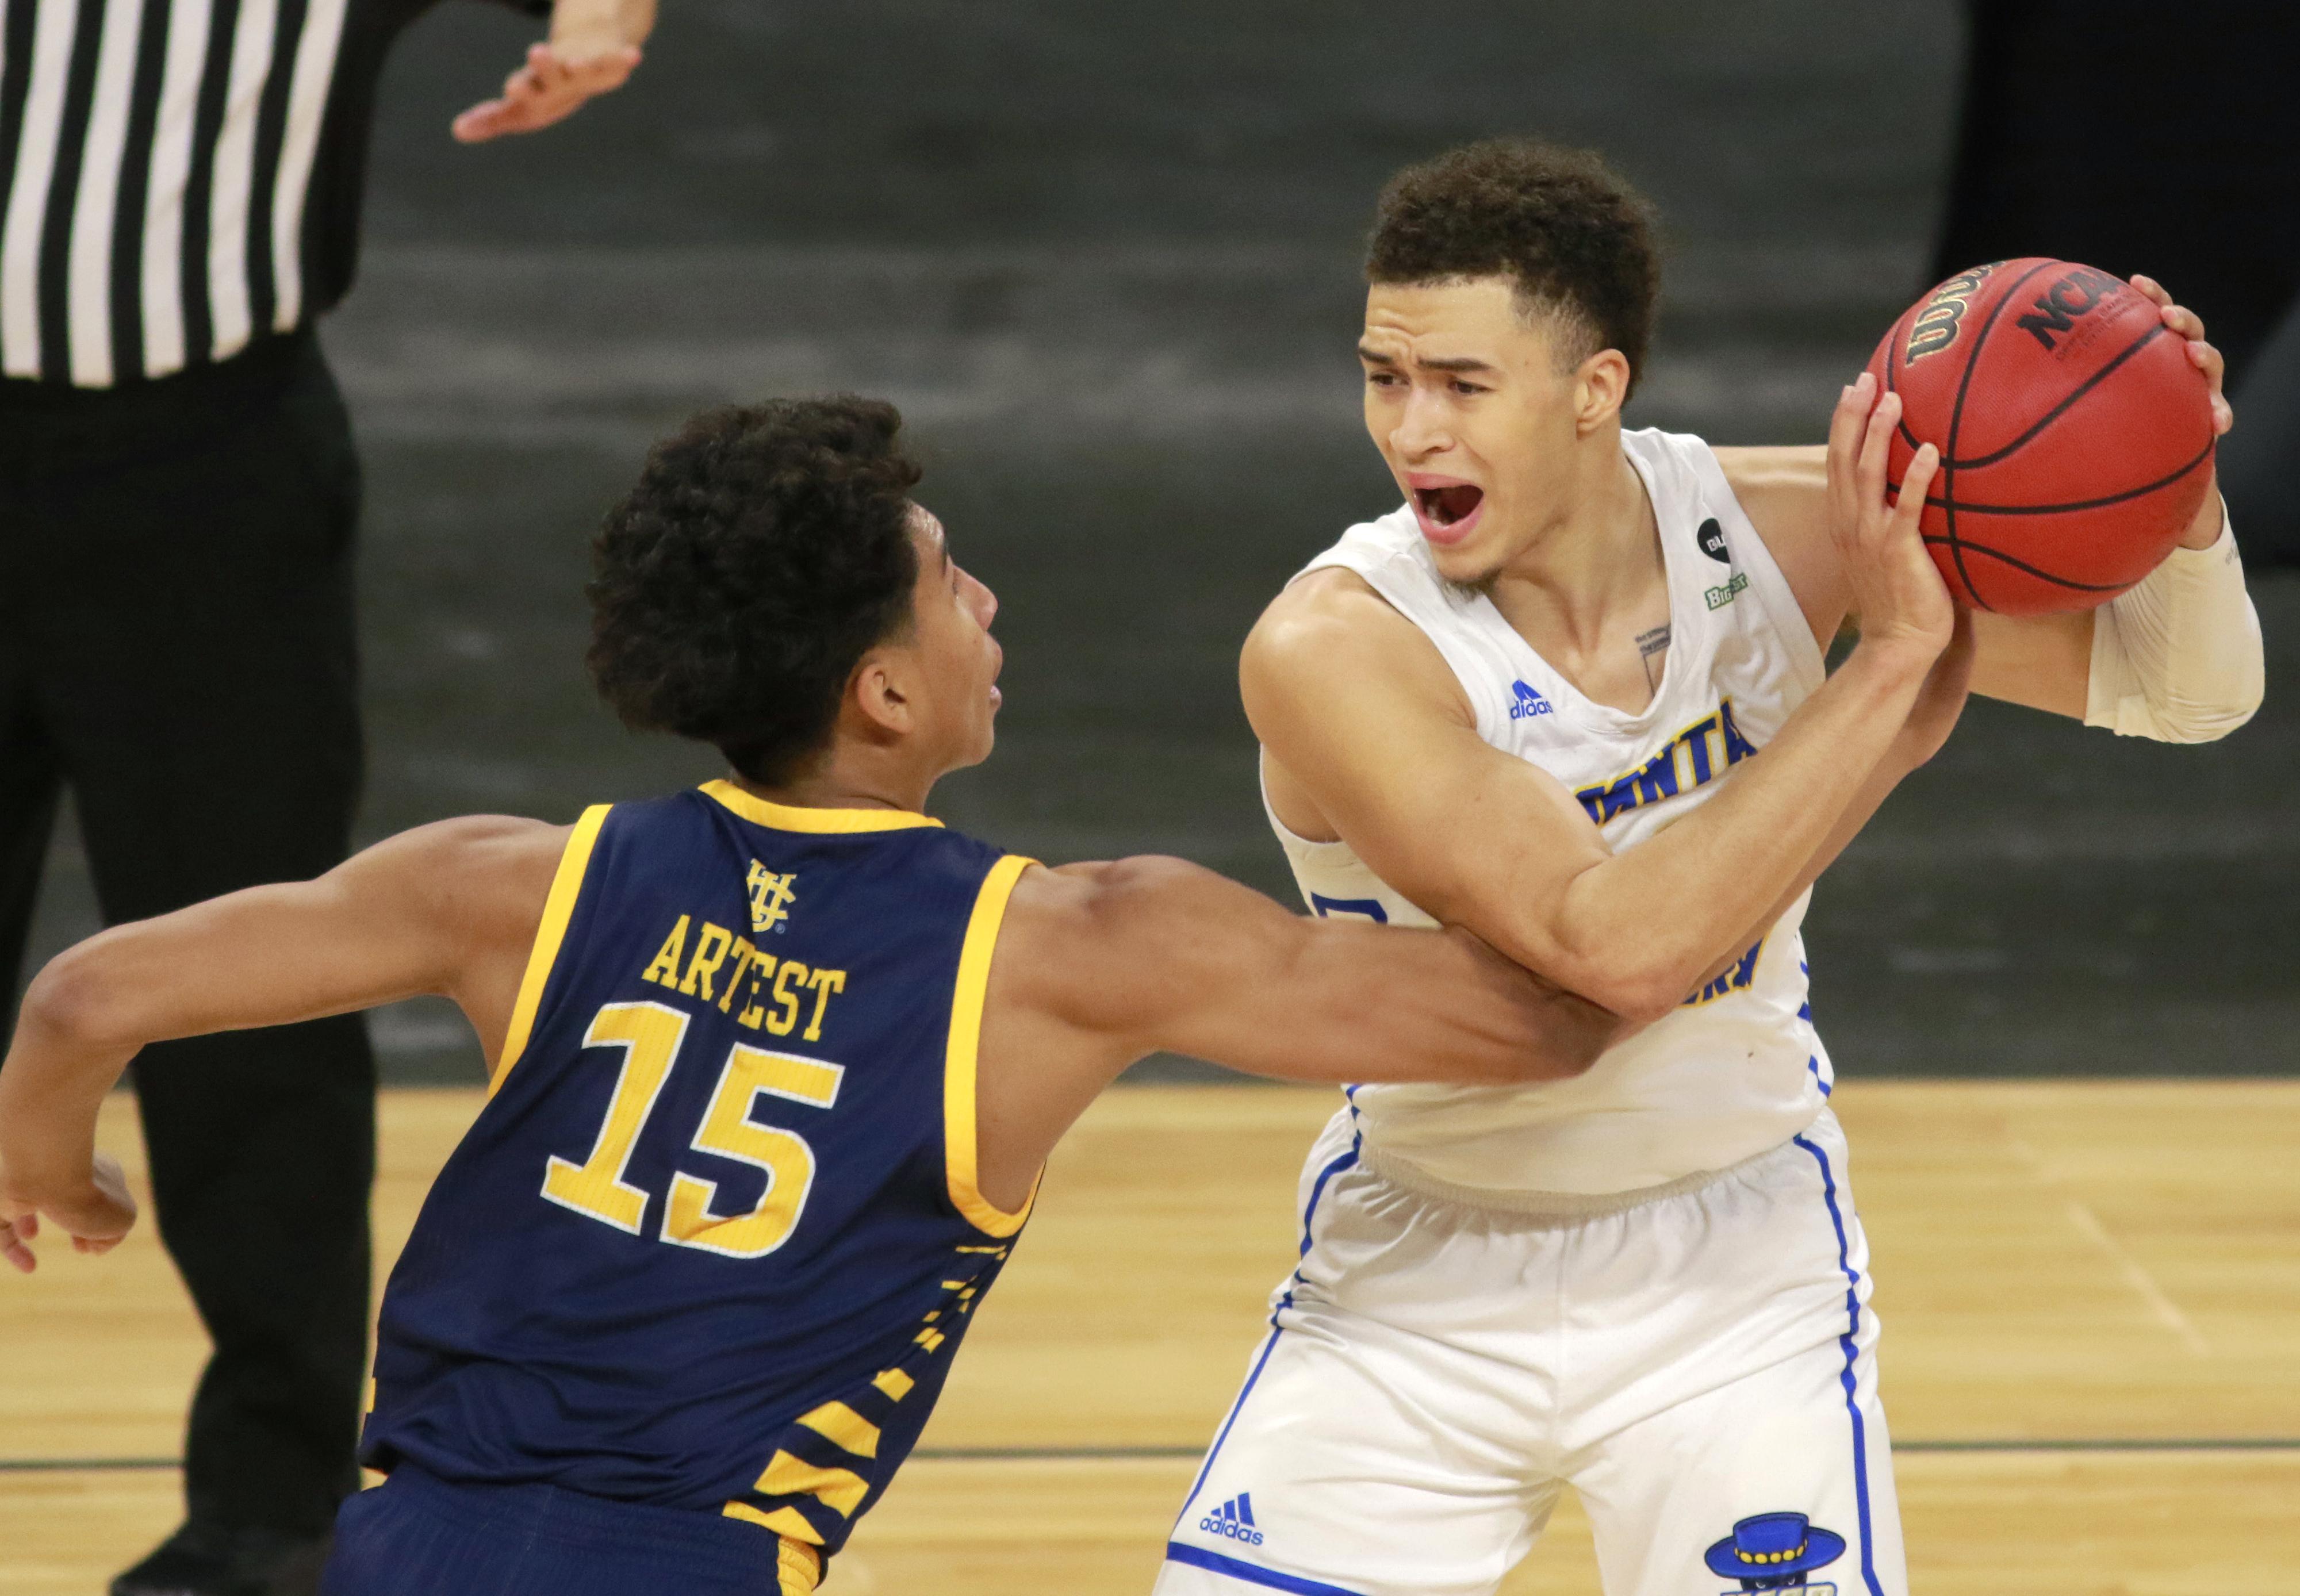 UC Santa Barbara's Jaquori McLaughlin (3) keeps the ball from the reach of UC Irvine's Jeron Artest (15) during the second half of an NCAA college basketball game for the championship of the Big West Conference men's tournament Saturday, March 13, 2021, in Las Vegas. UC Santa Barbara won 79 to 63.